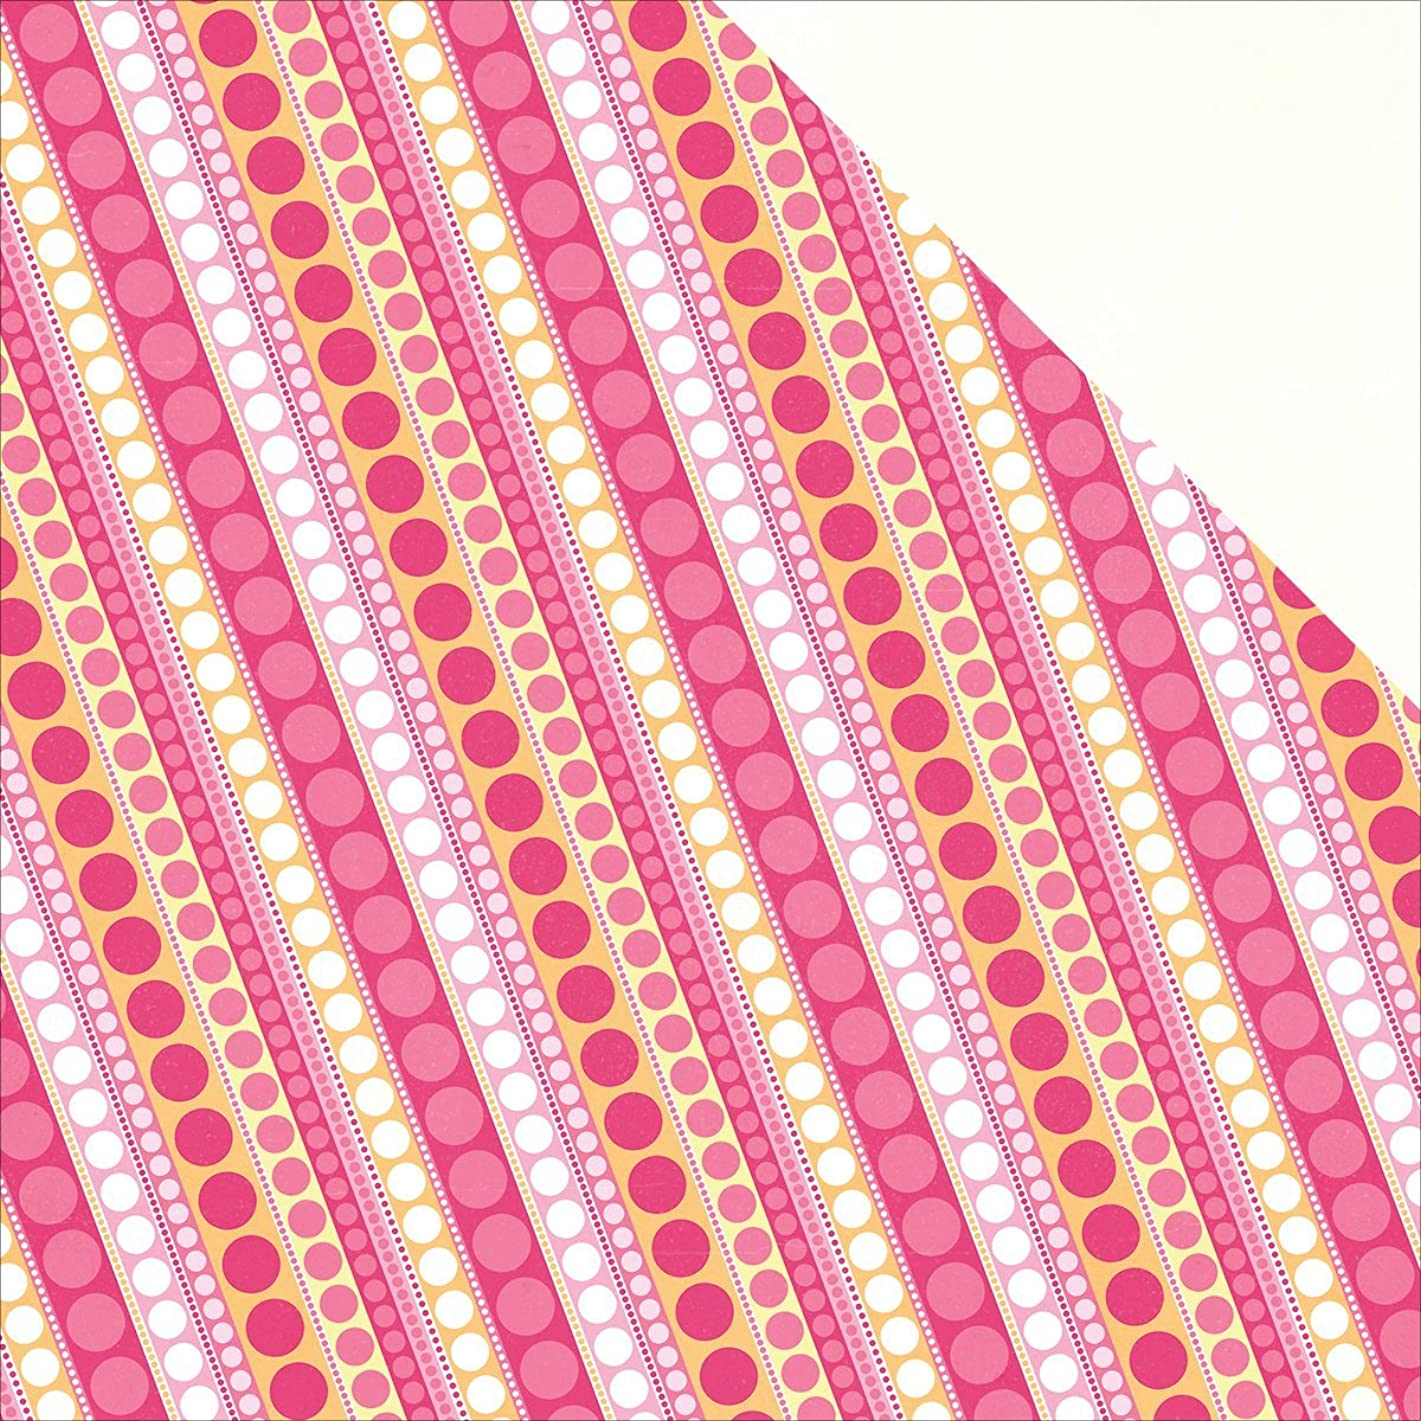 Photo Play Paper PG2174 25 Sheet Diagonal Dot Party Girl Double-Sided Cardstock, 12